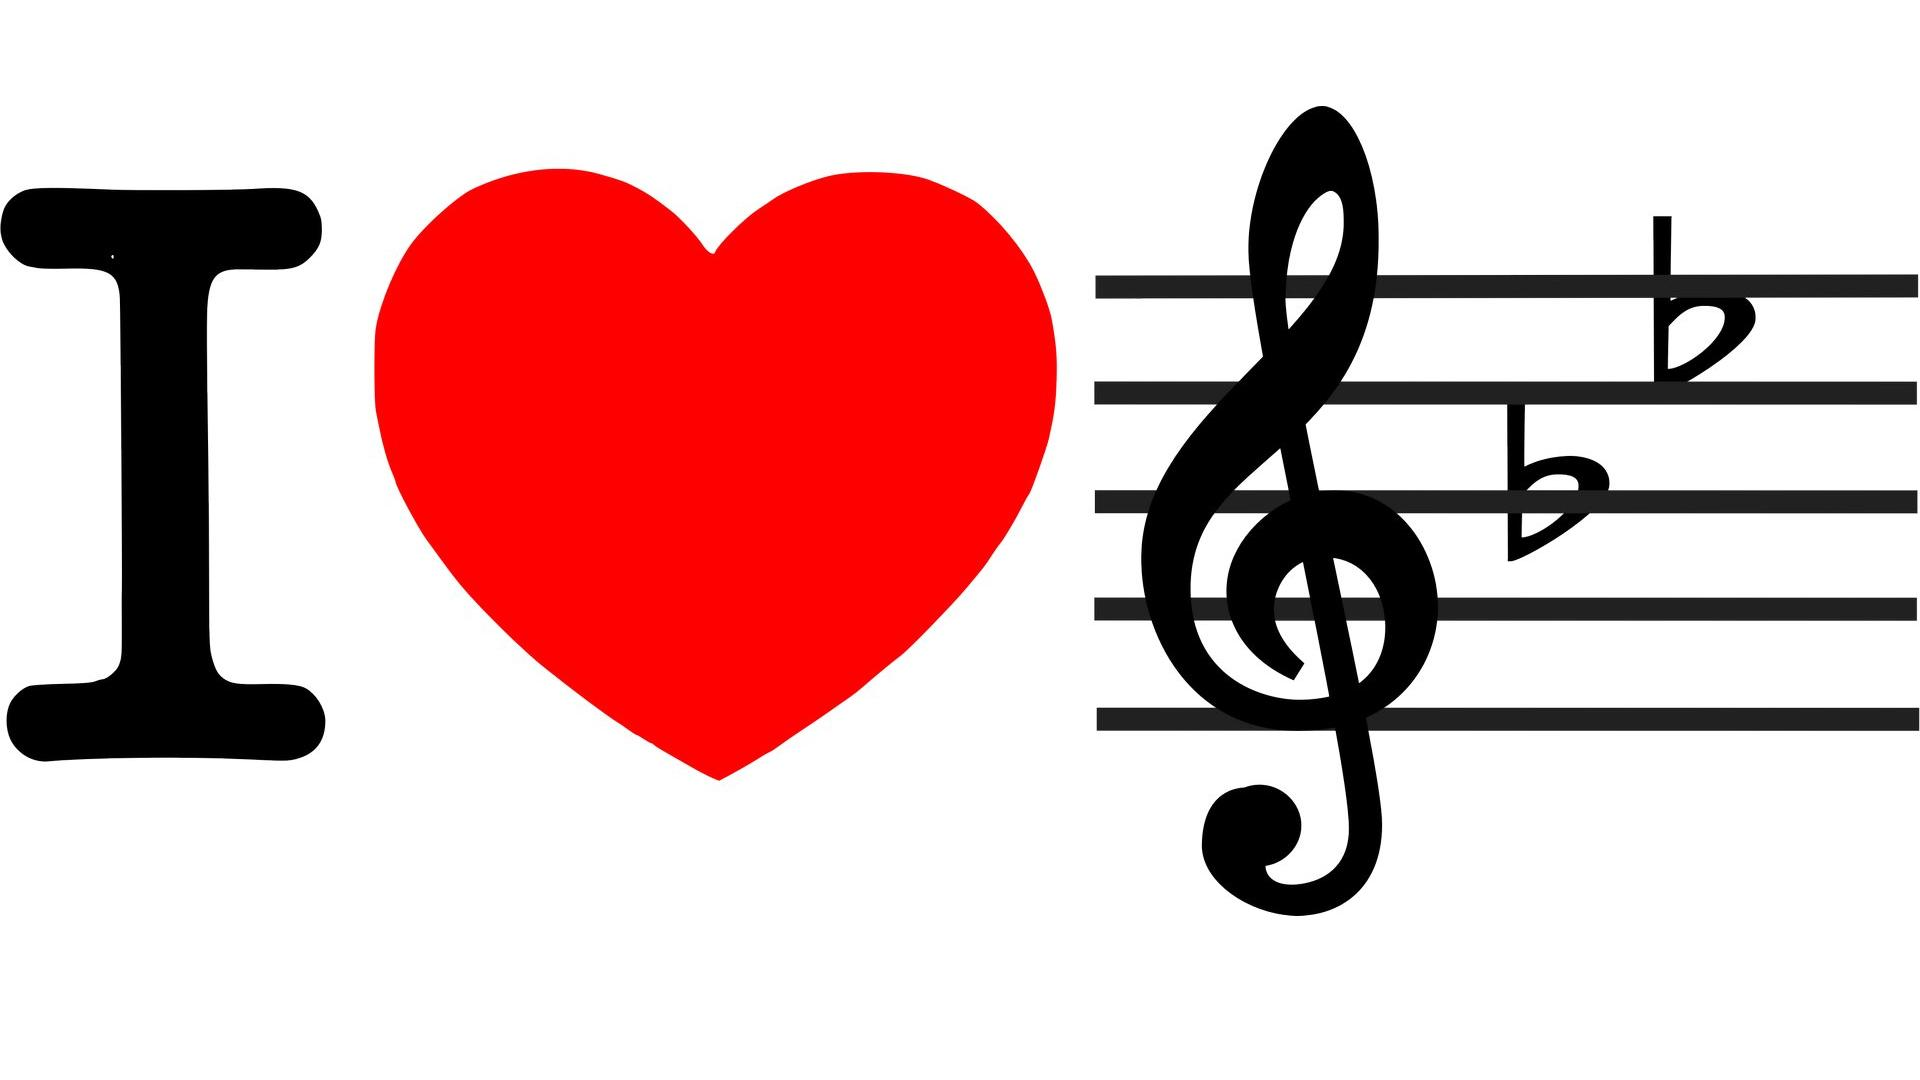 Love Ke Wallpaper : I love music 1920x1080. Tapeta, wallpaper, obrazek zdarma ke sta?eni